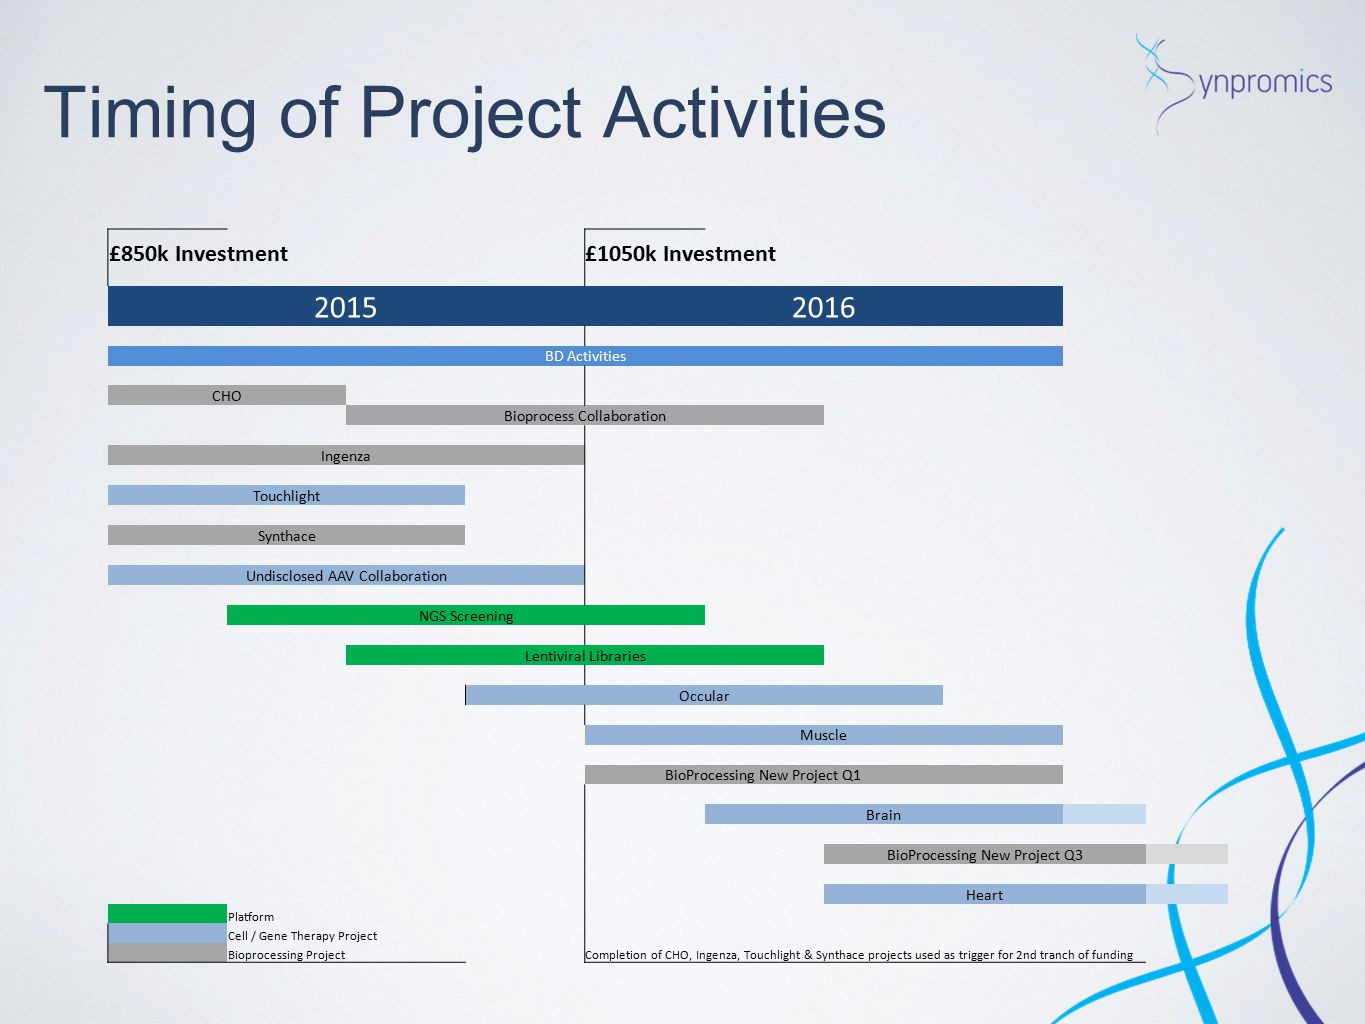 Timing of Project Activities